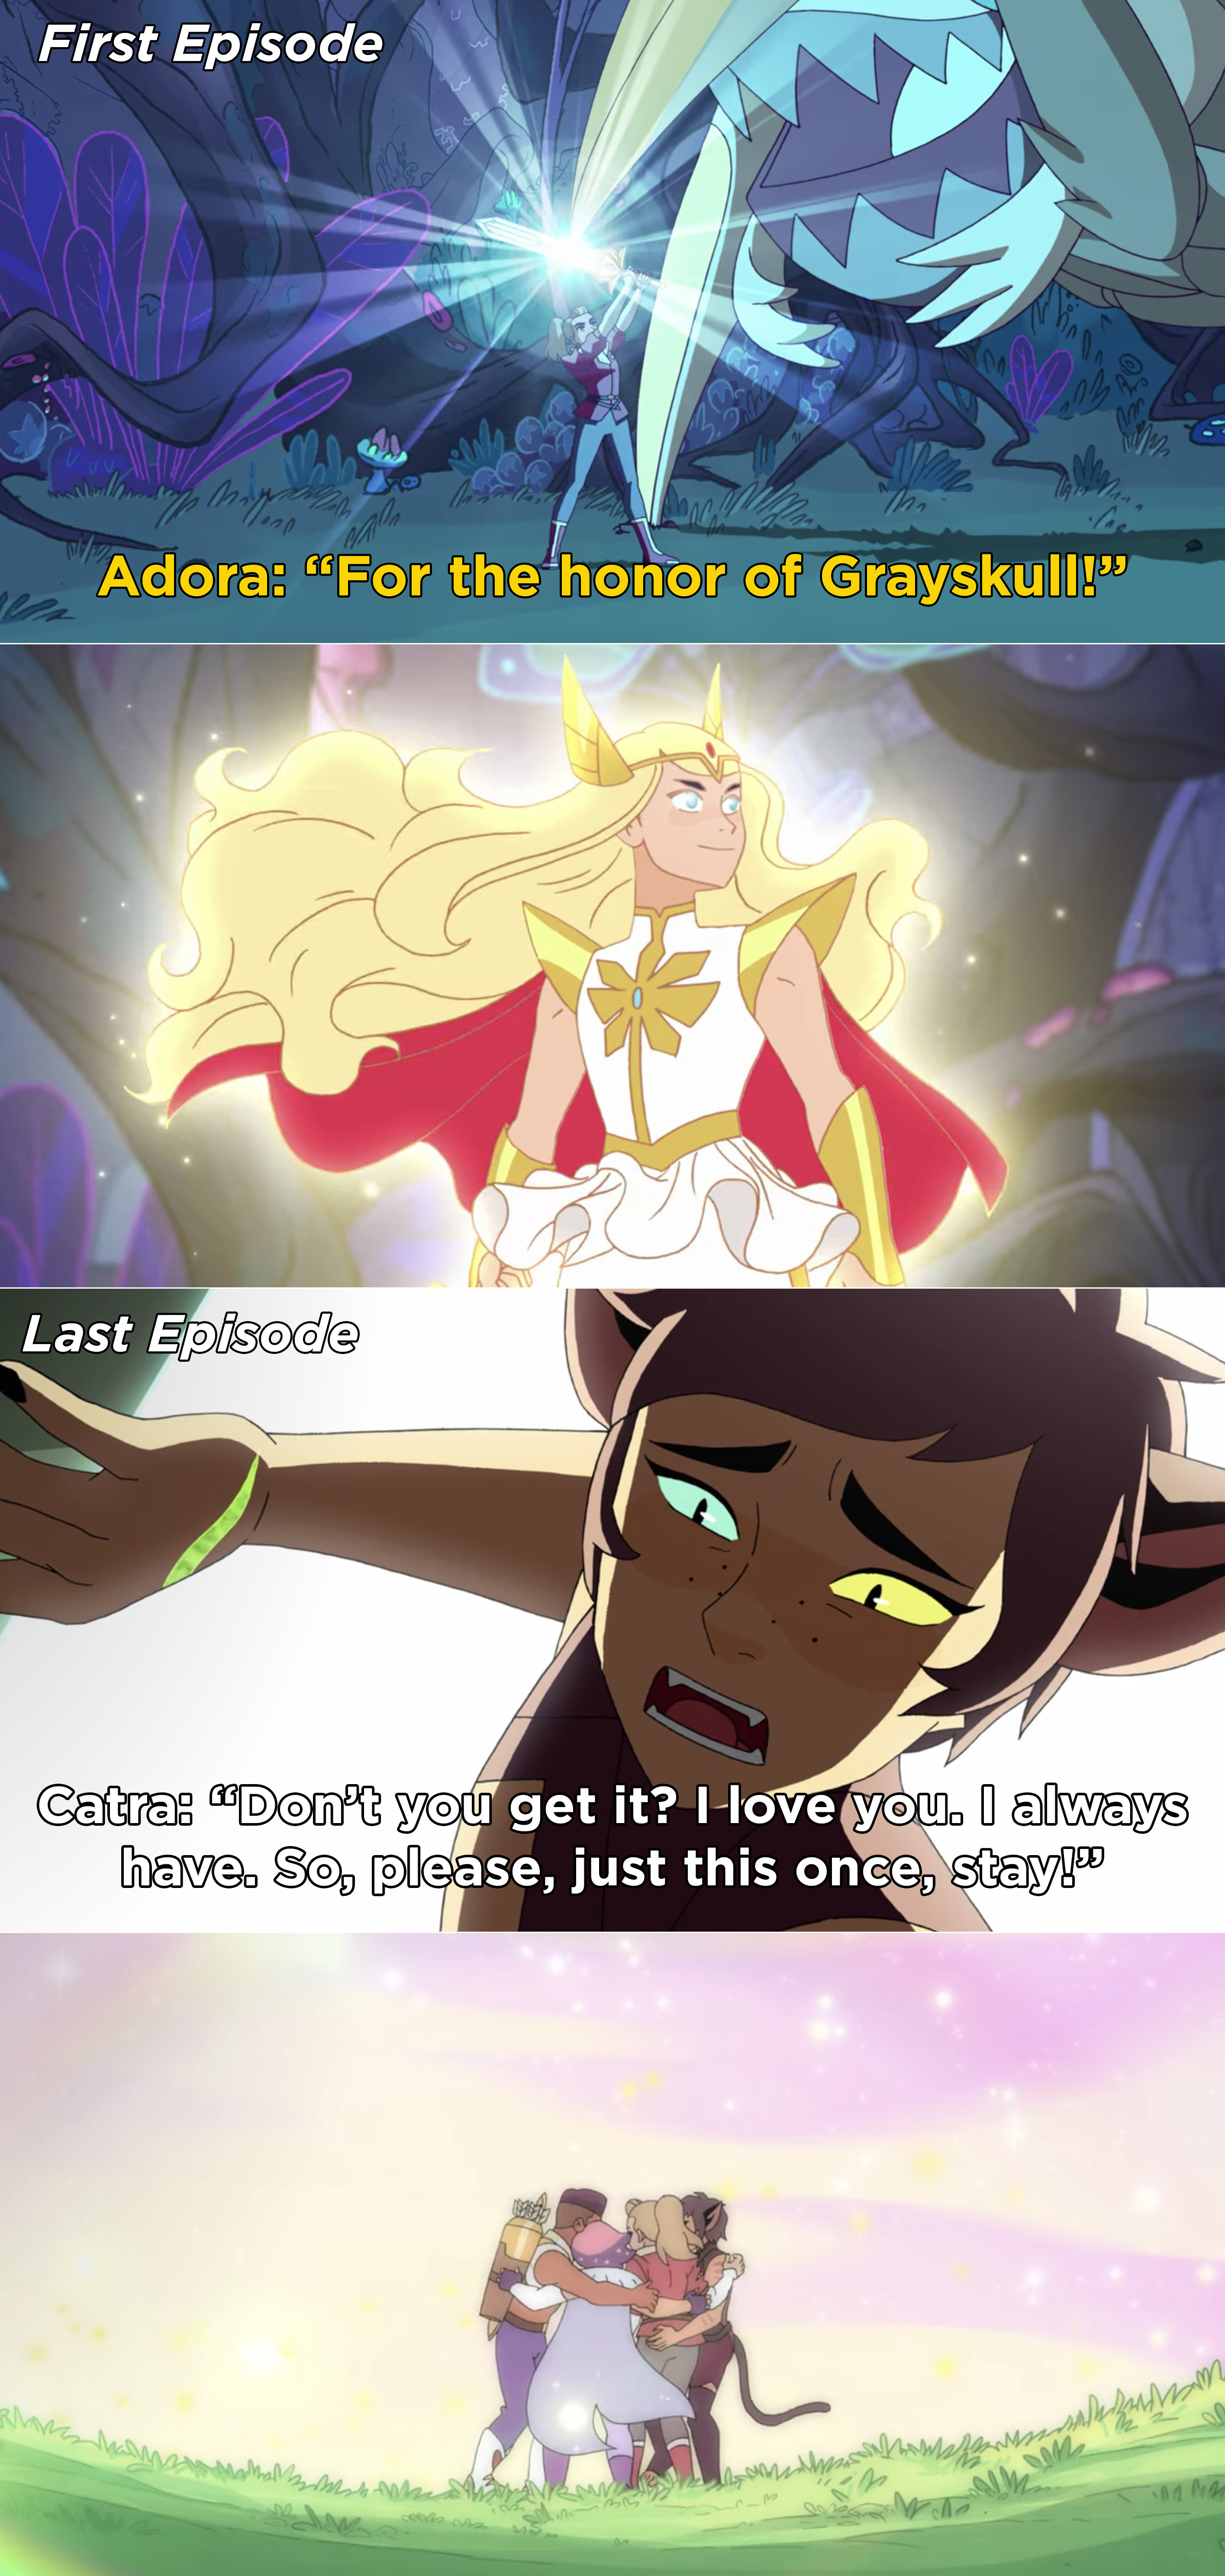 Adora becoming She-Ra for the first time, then Catra pleading with Adora to stay because she loves her